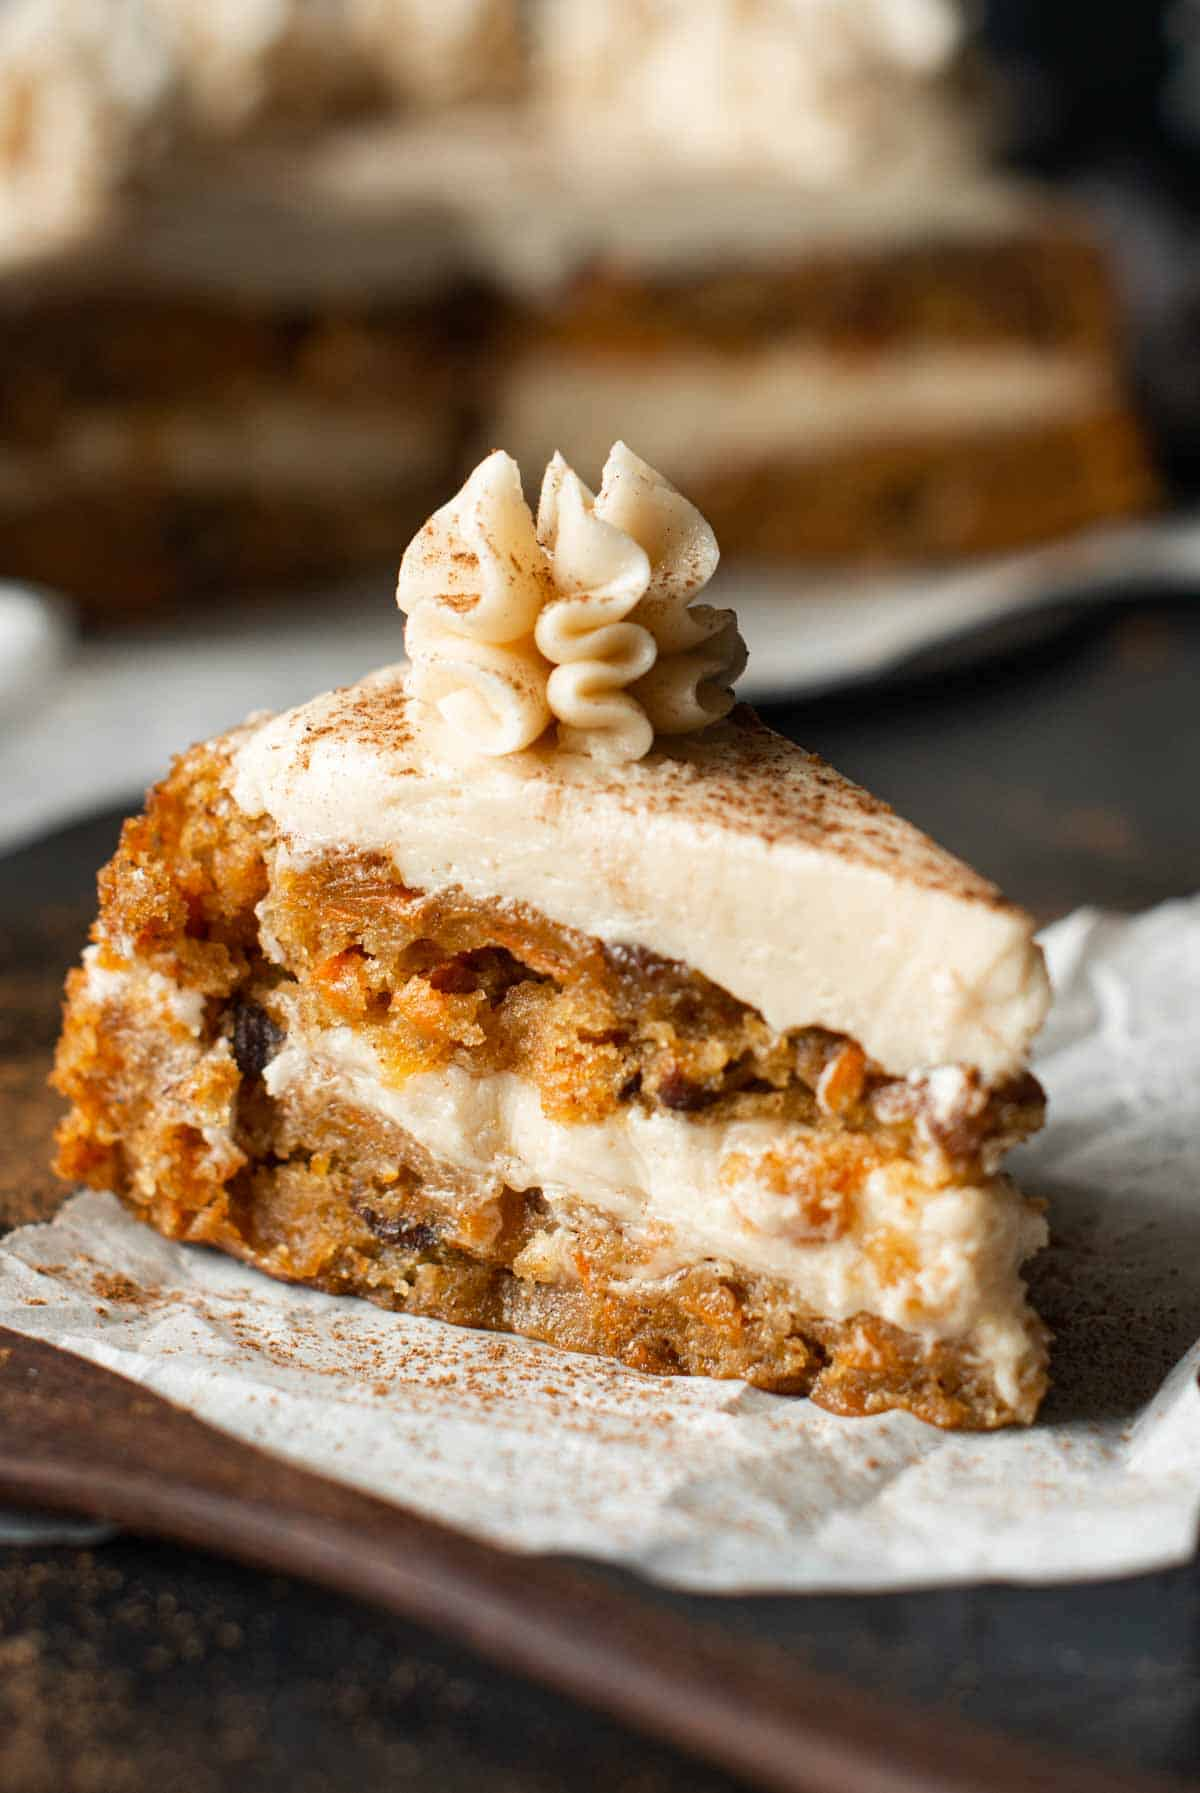 Image of the a piece of carrot cake